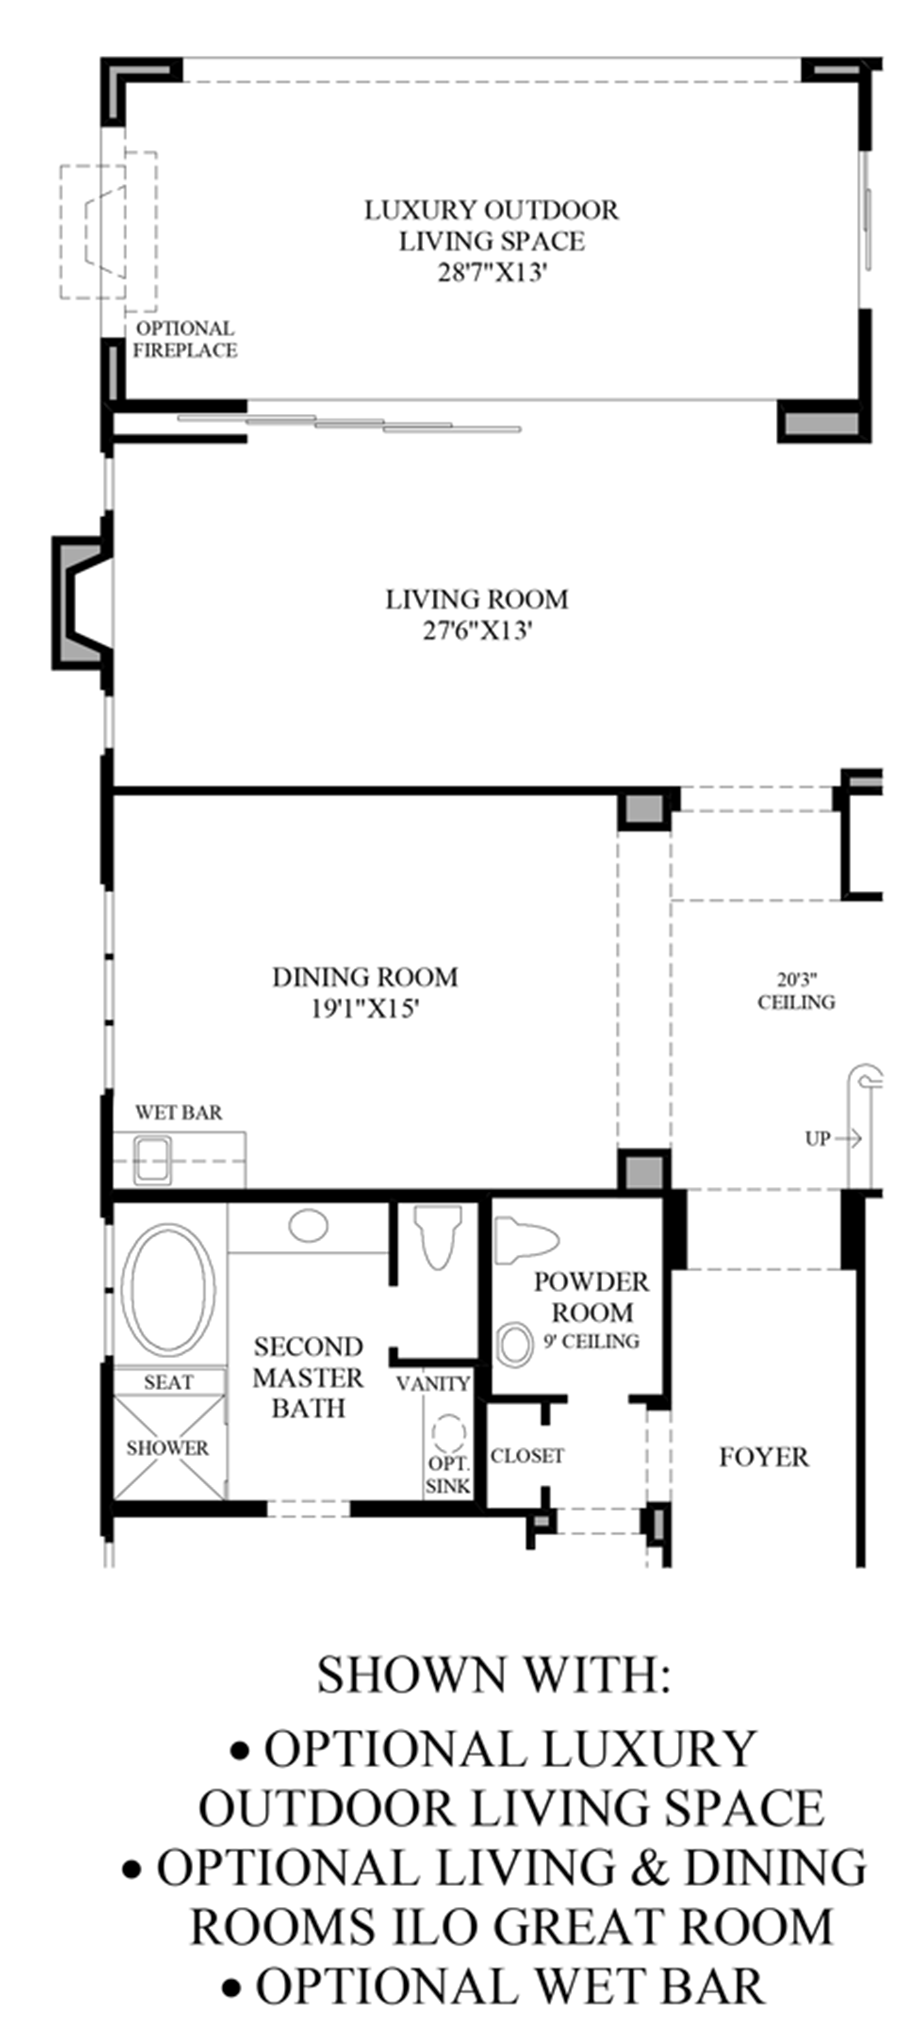 Optional Luxury Outdoor Living Space, Living & Dining Rooms ILO Great Room and Wet Bar Floor Plan